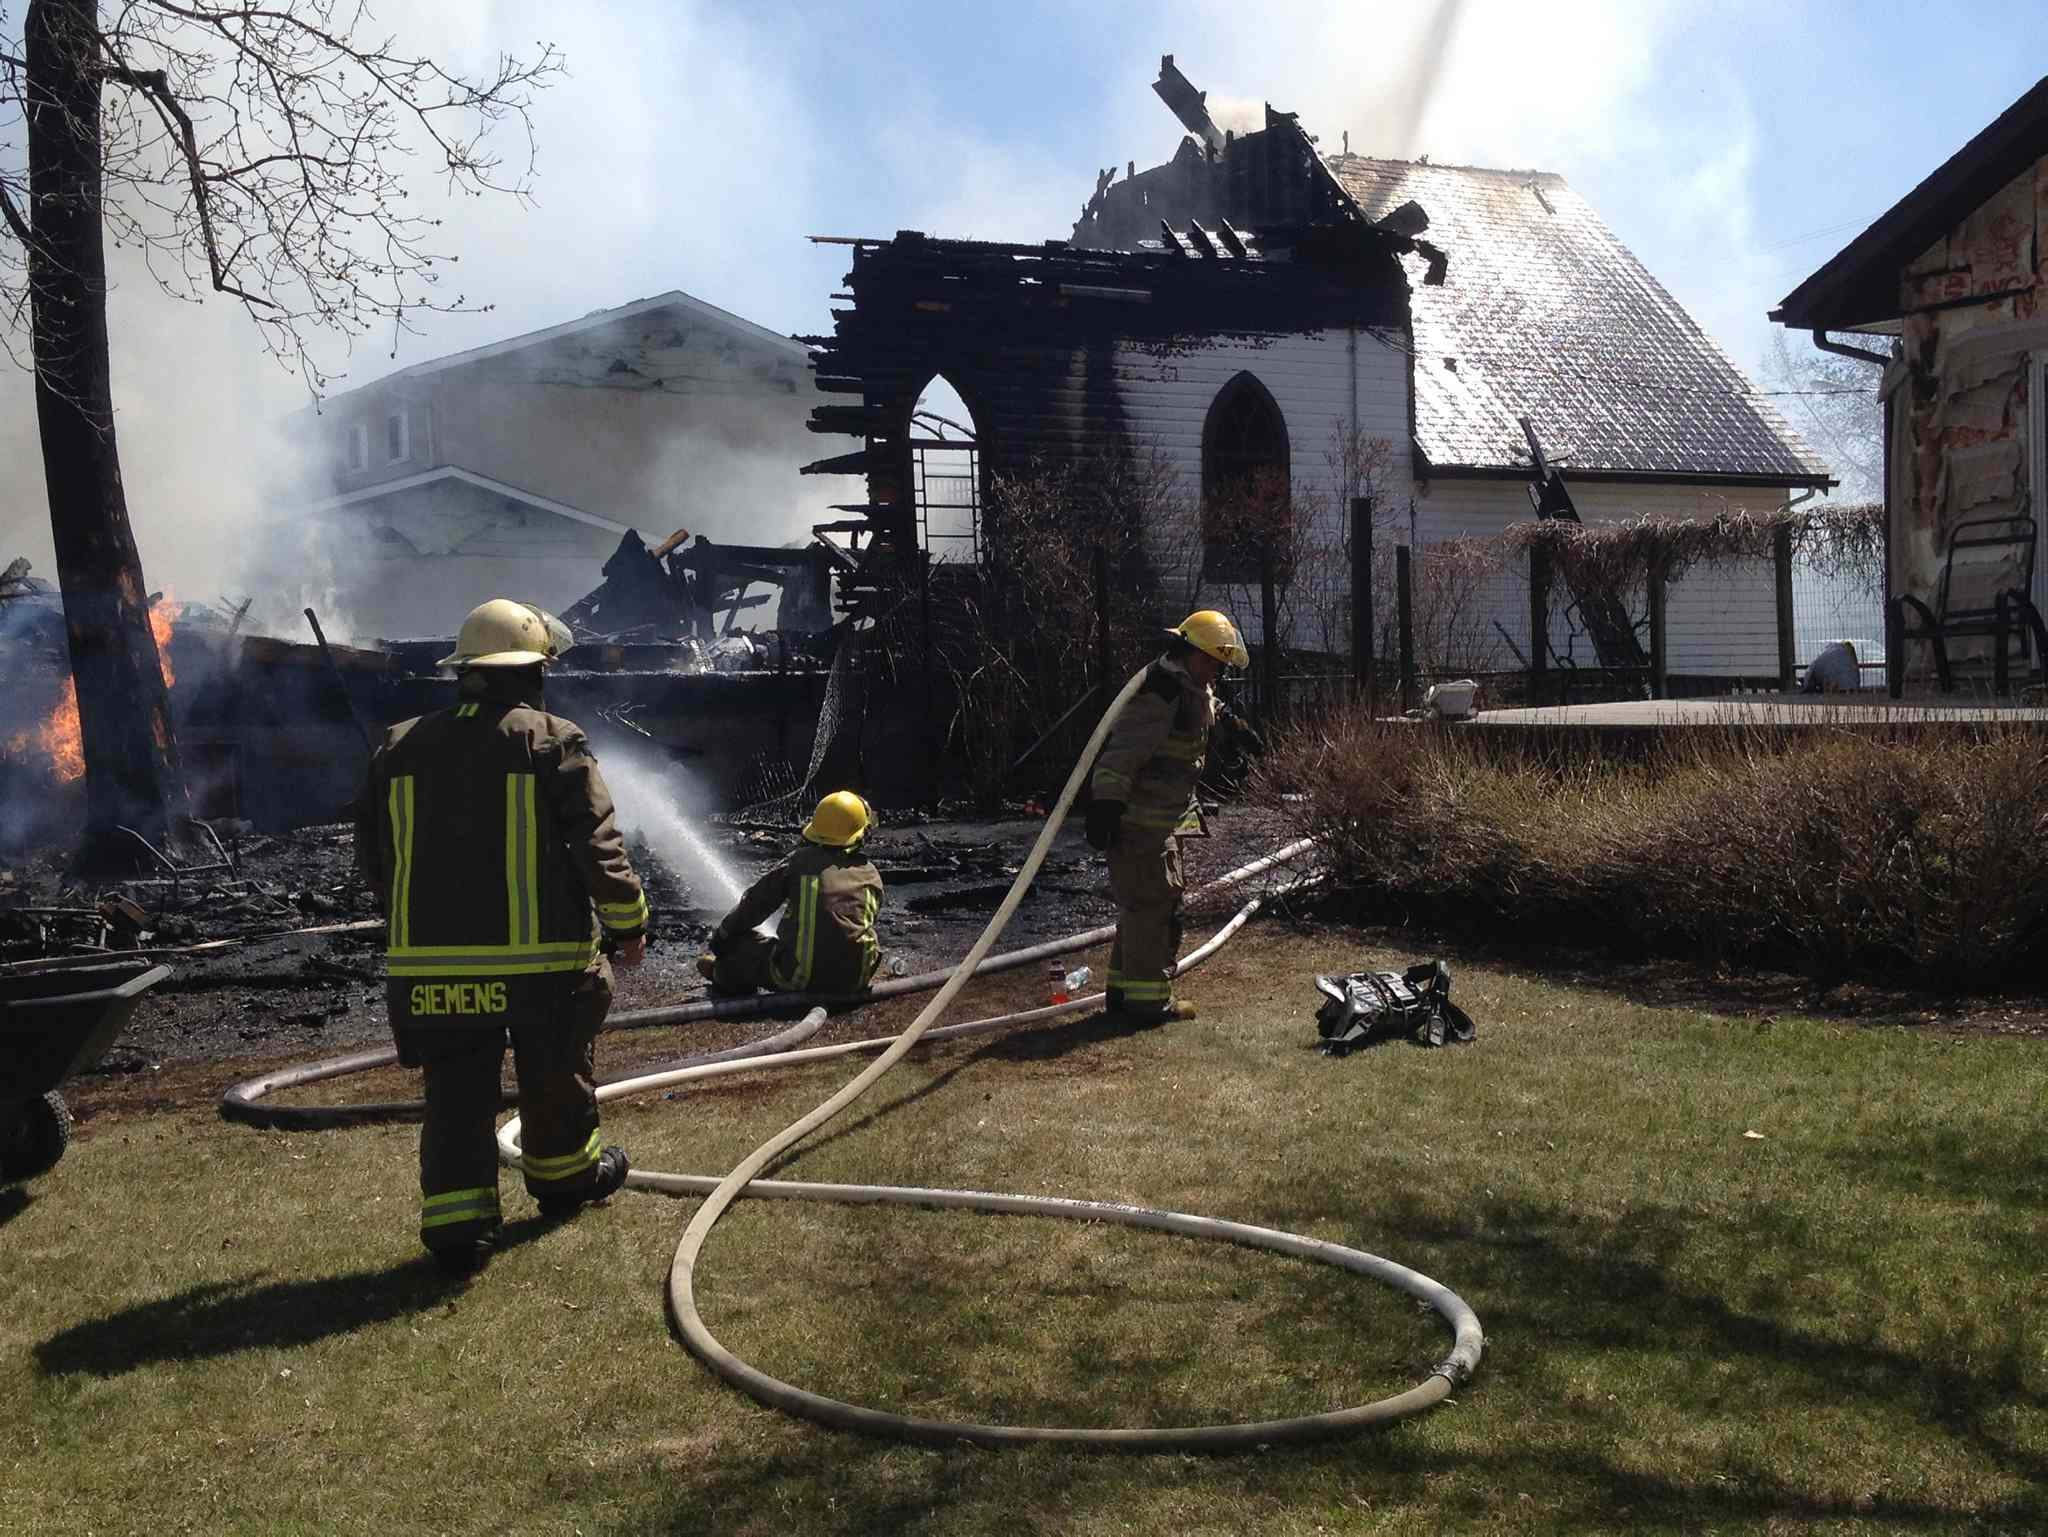 Firefighters douse the flames of the fire that destroyed the 110-year-old United Church in the community of Starbuck this afternoon. The blaze began shortly after lunch, and fire crews from the RM of Macdonald and neighbouring municipalities responded.